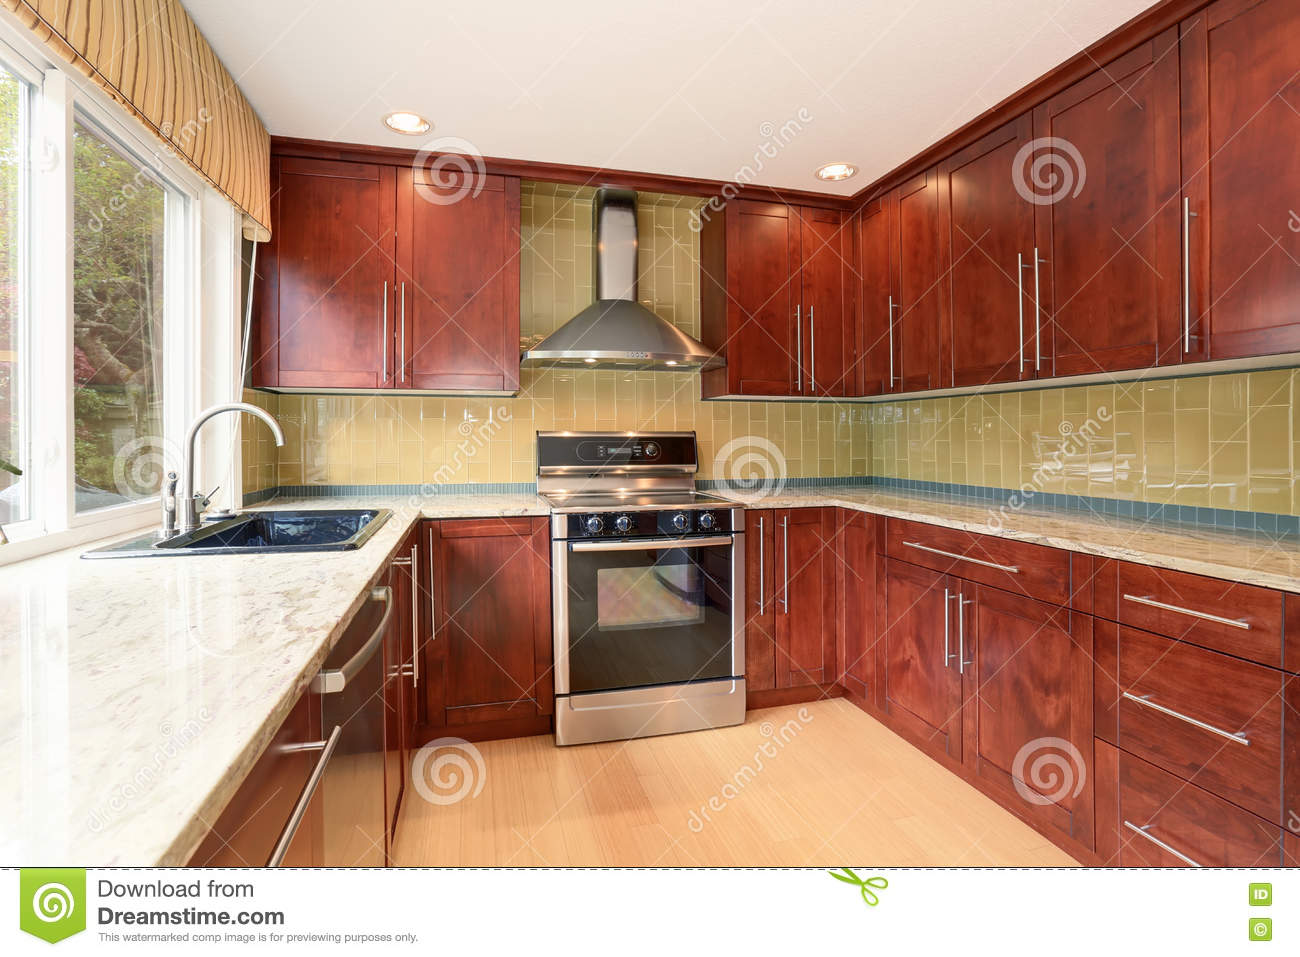 Kitchen Room Interior With Modern Brown Cabinets And Light